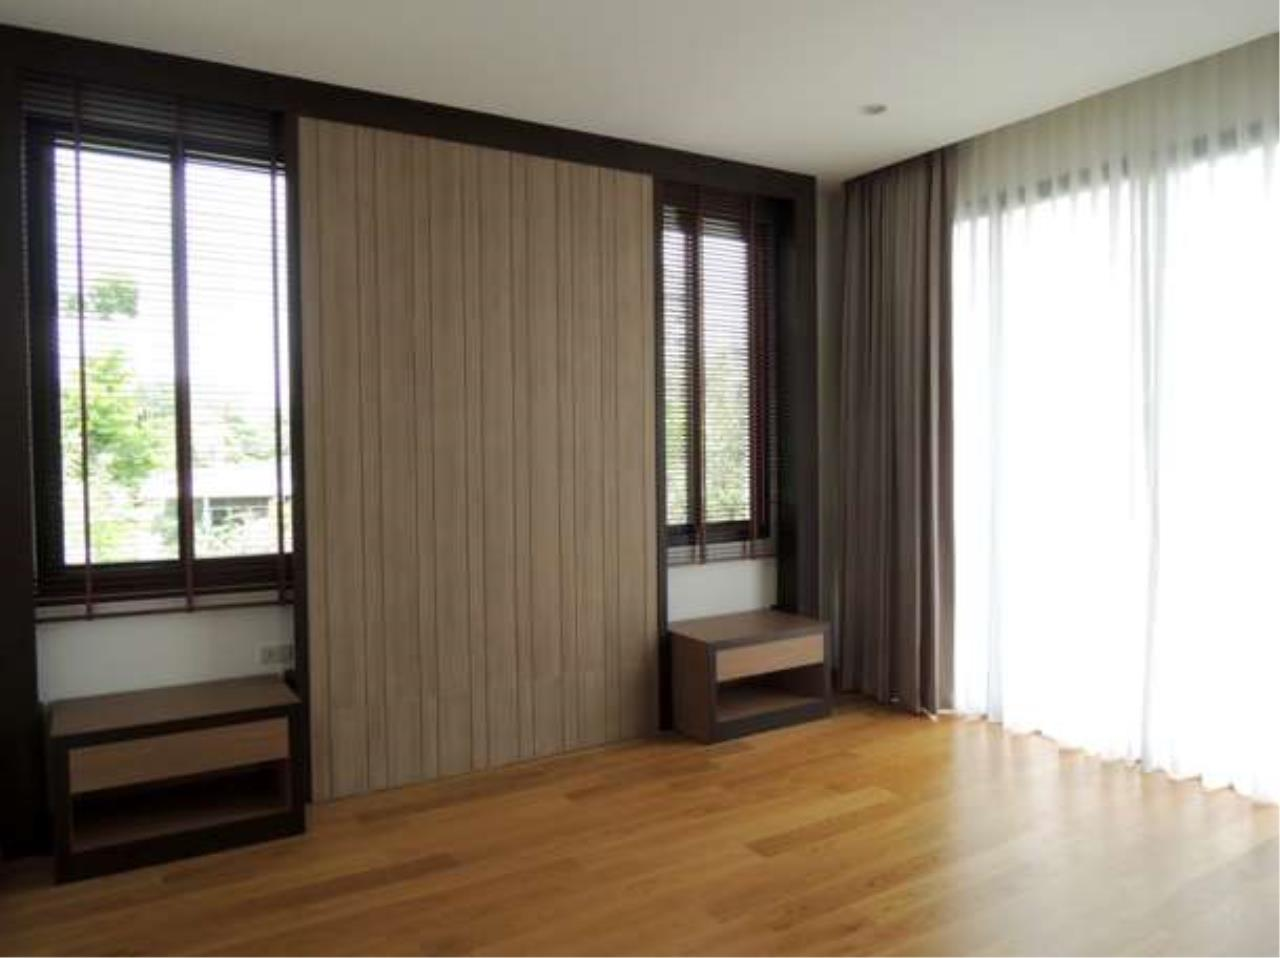 Right Move Thailand Agency's HR423 House For Sale  60,000,000 THB  - 4 Bedrooms - 315 sqm. 13